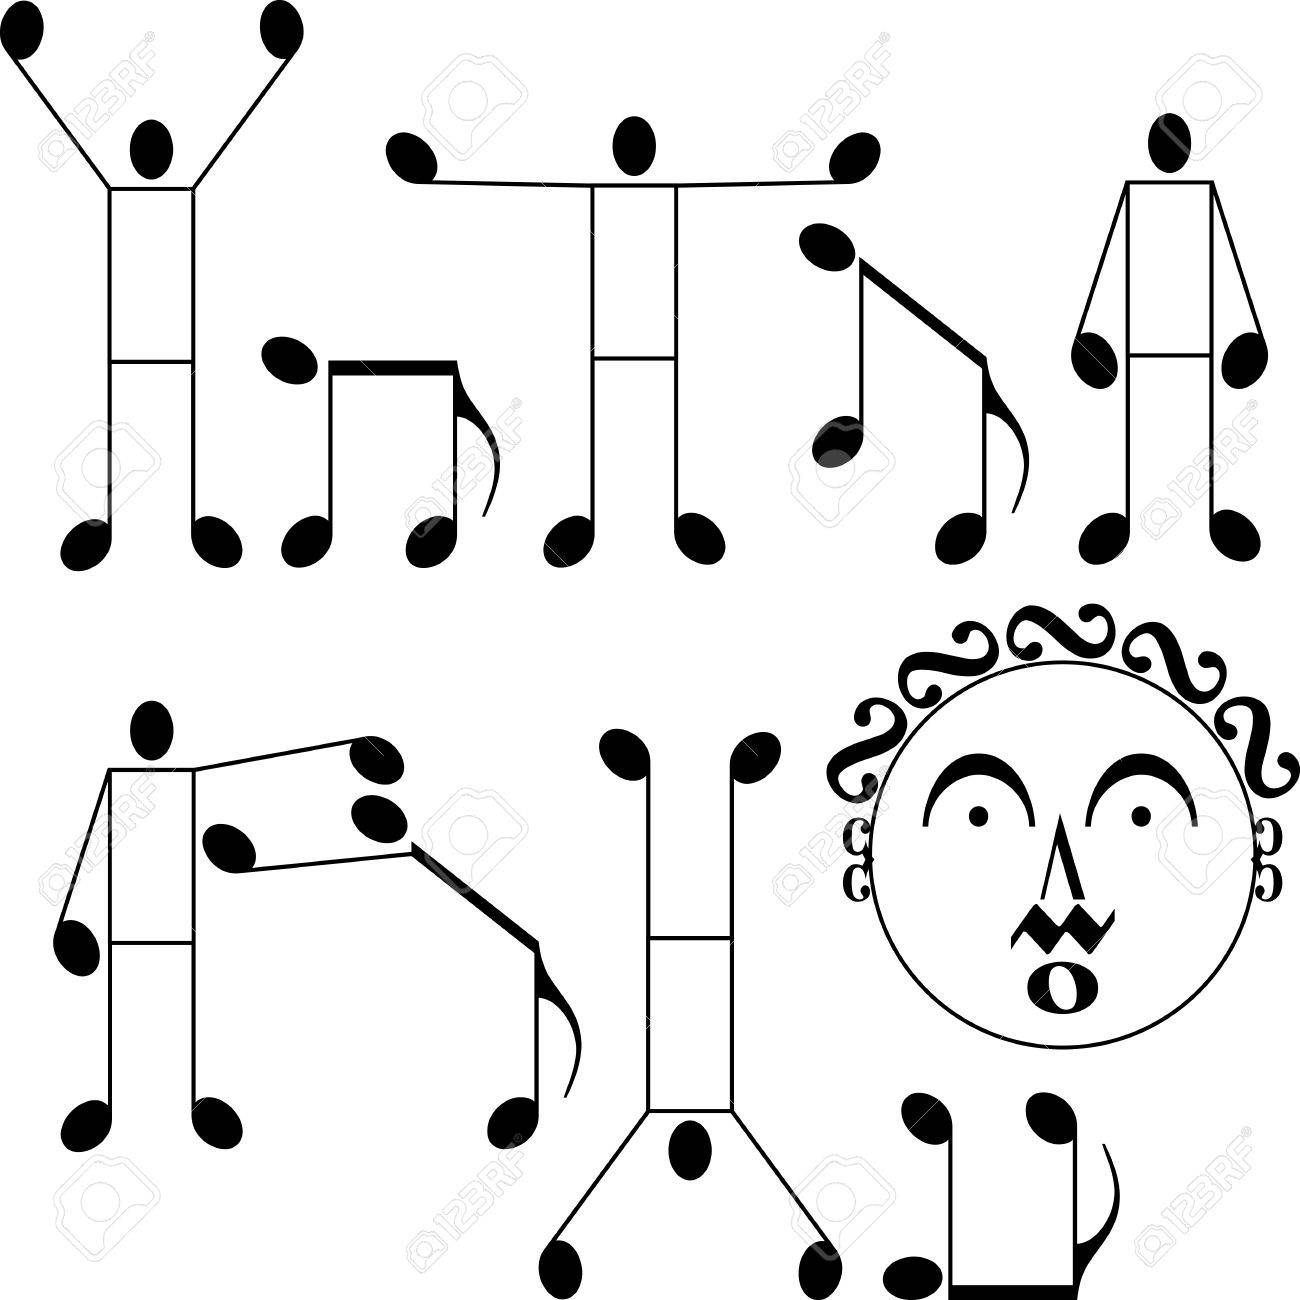 musical notes as a man and dog Stock Vector - 14519627